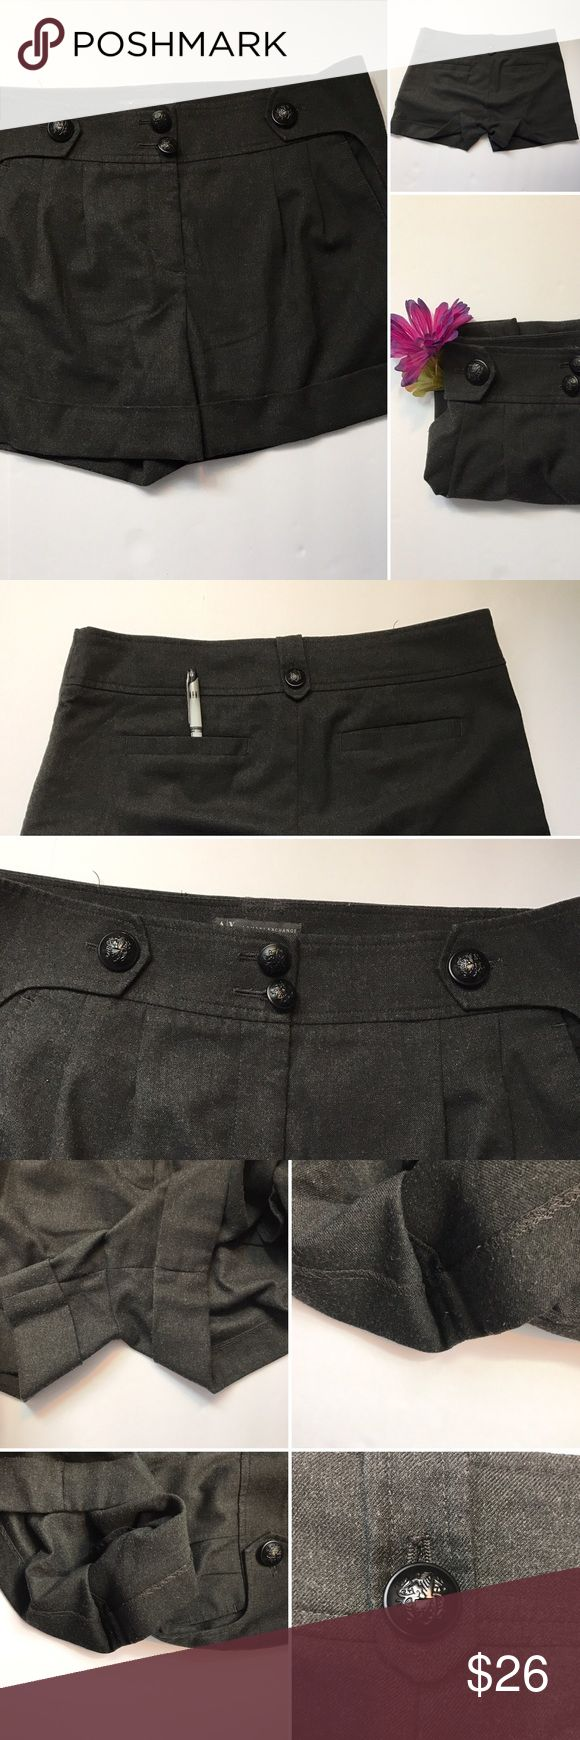 A/X Armani exchange shorts 🚭Cutest little shorts ever. Armani exchange AX with gorgeous buttons. One button is a little loose probably should be tightened. Please see all pictures there is a little pearling to the material where rubs. Please see pictures closely see tags for size, materials and washing instructions. Very dark gray almost black. A/X Armani Exchange Shorts